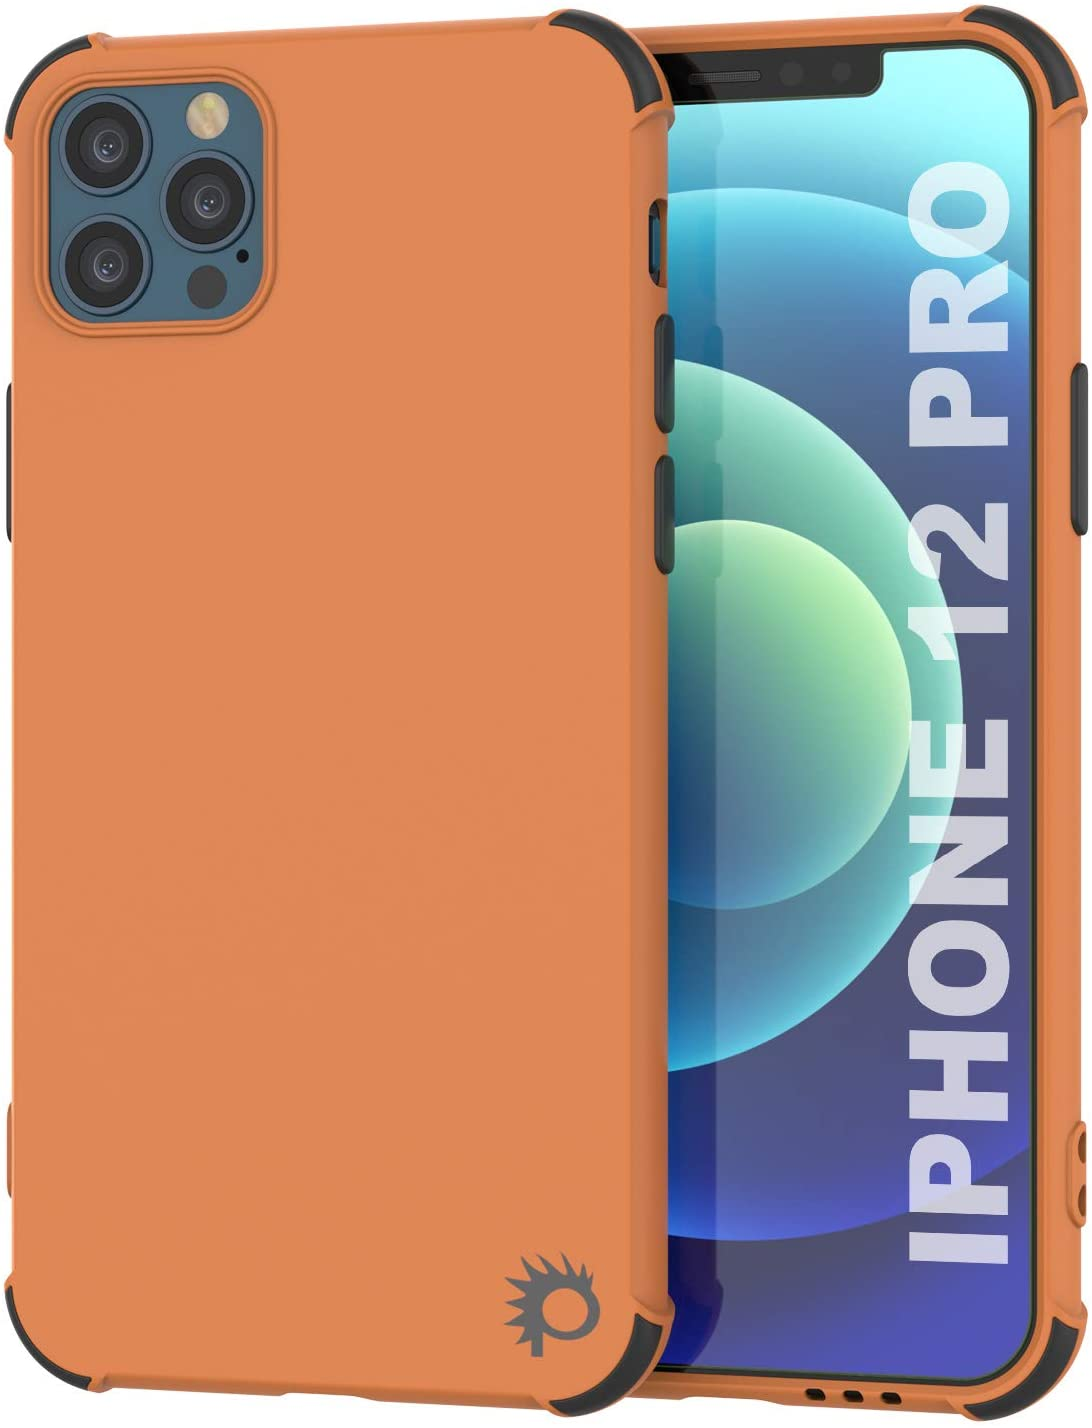 Punkcase Protective & Lightweight TPU Case [Sunshine Series] for iPhone 12 Pro [Orange]